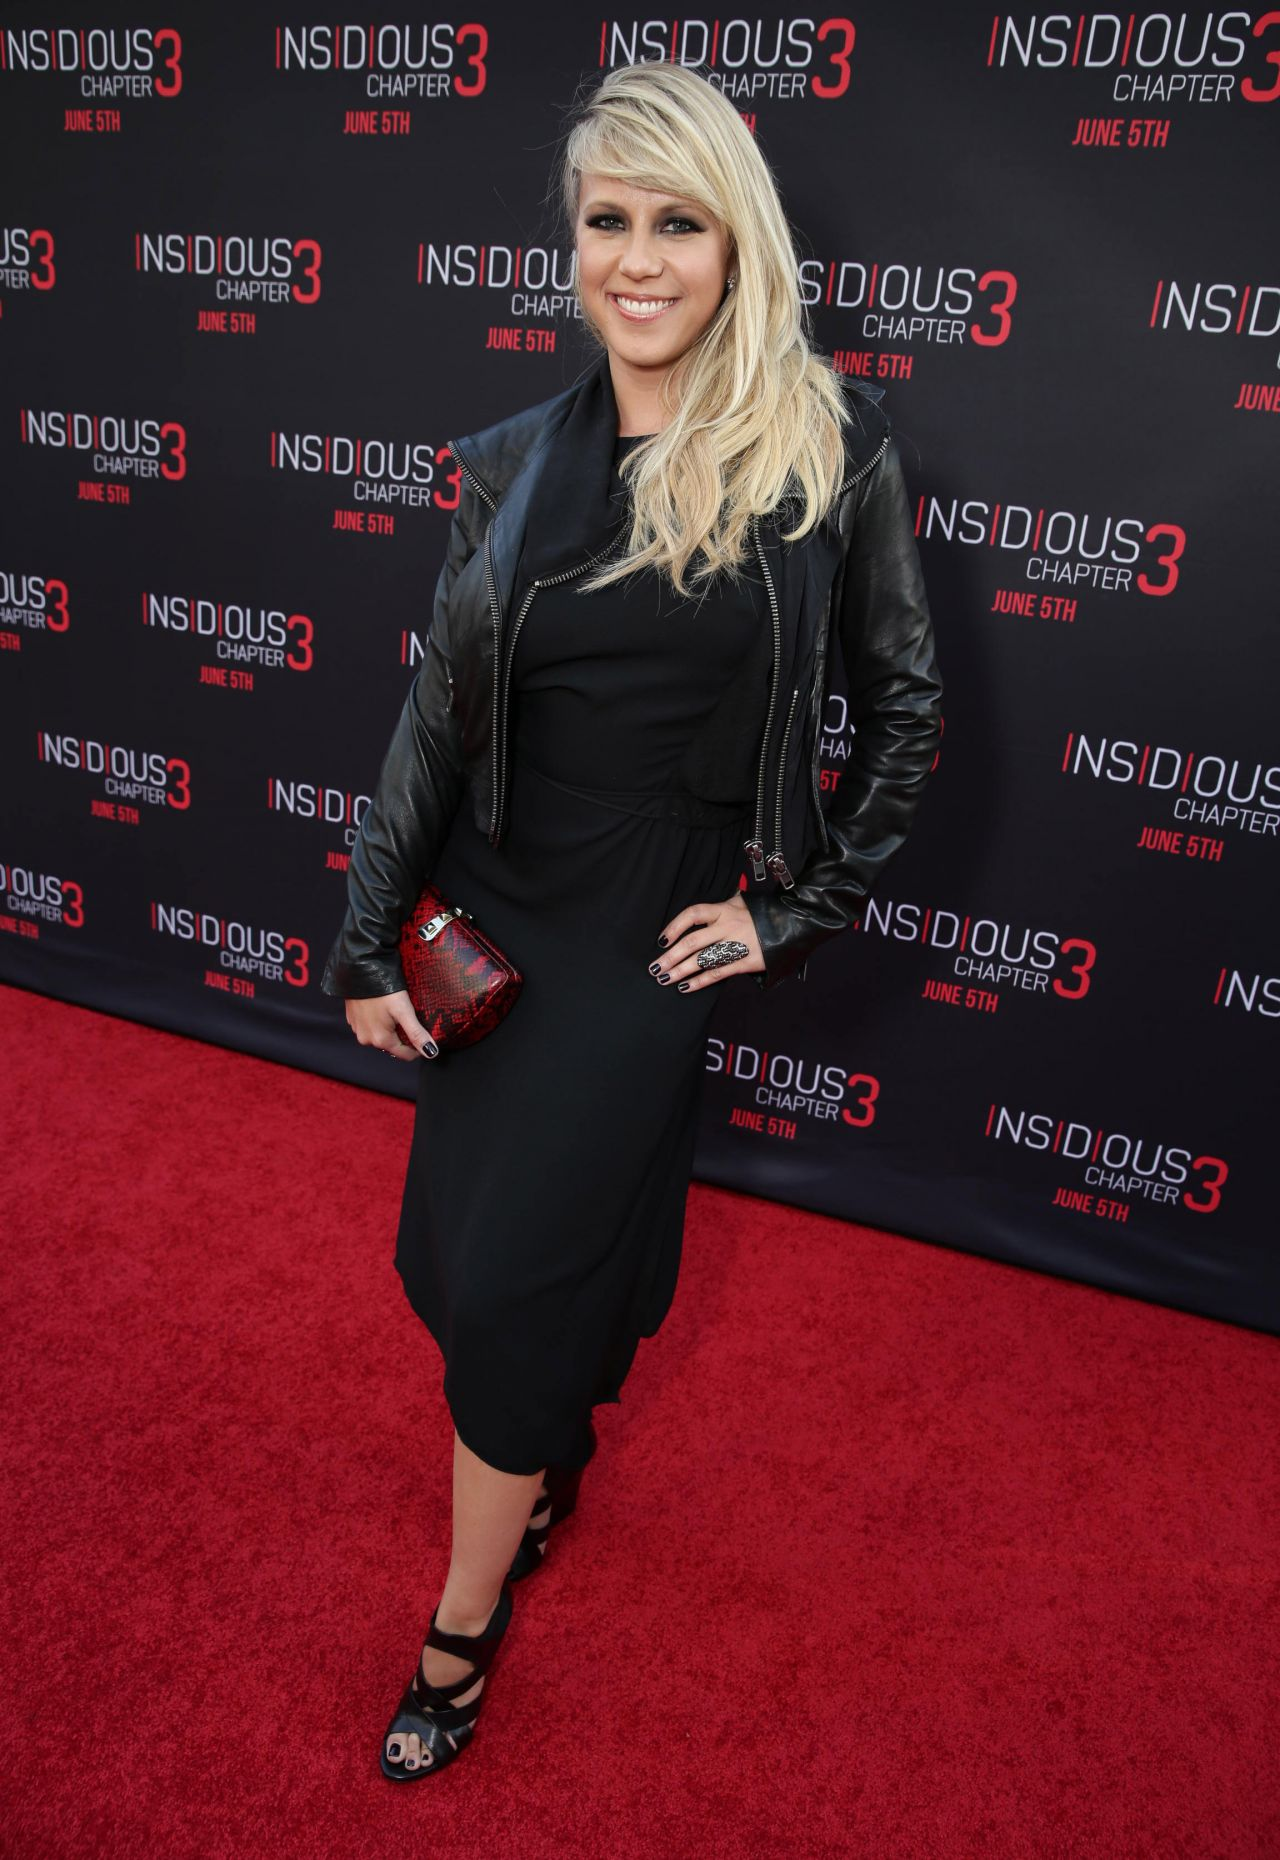 Jodie Sweetin  Insidious Chapter 3 Premiere In Hollywood-8116